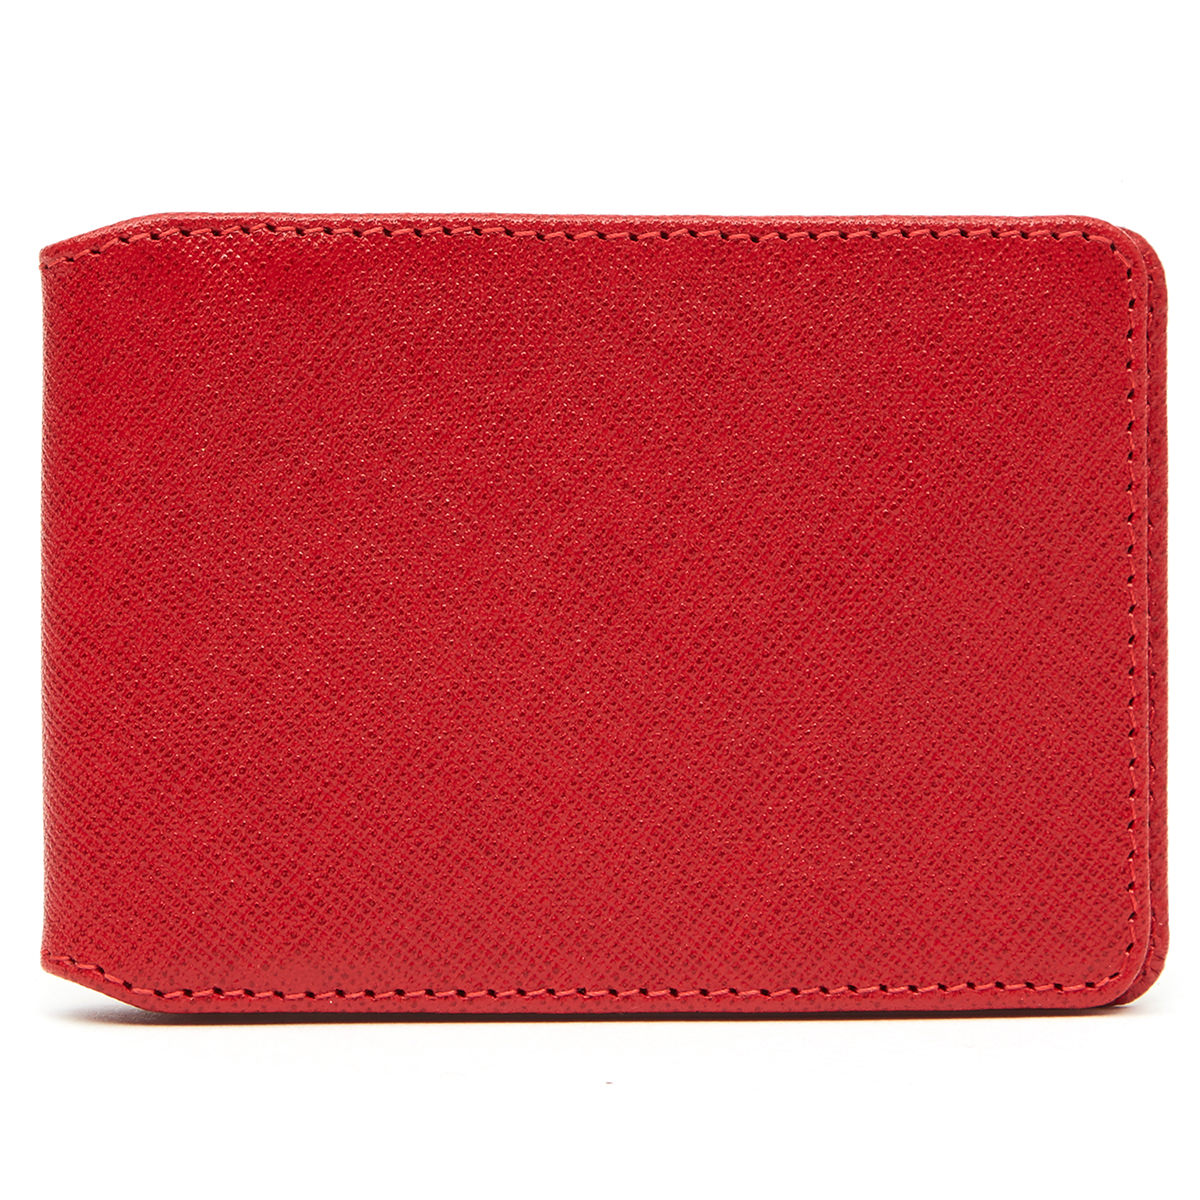 Greenwich Leather Travel Card Wallet - Christys Red